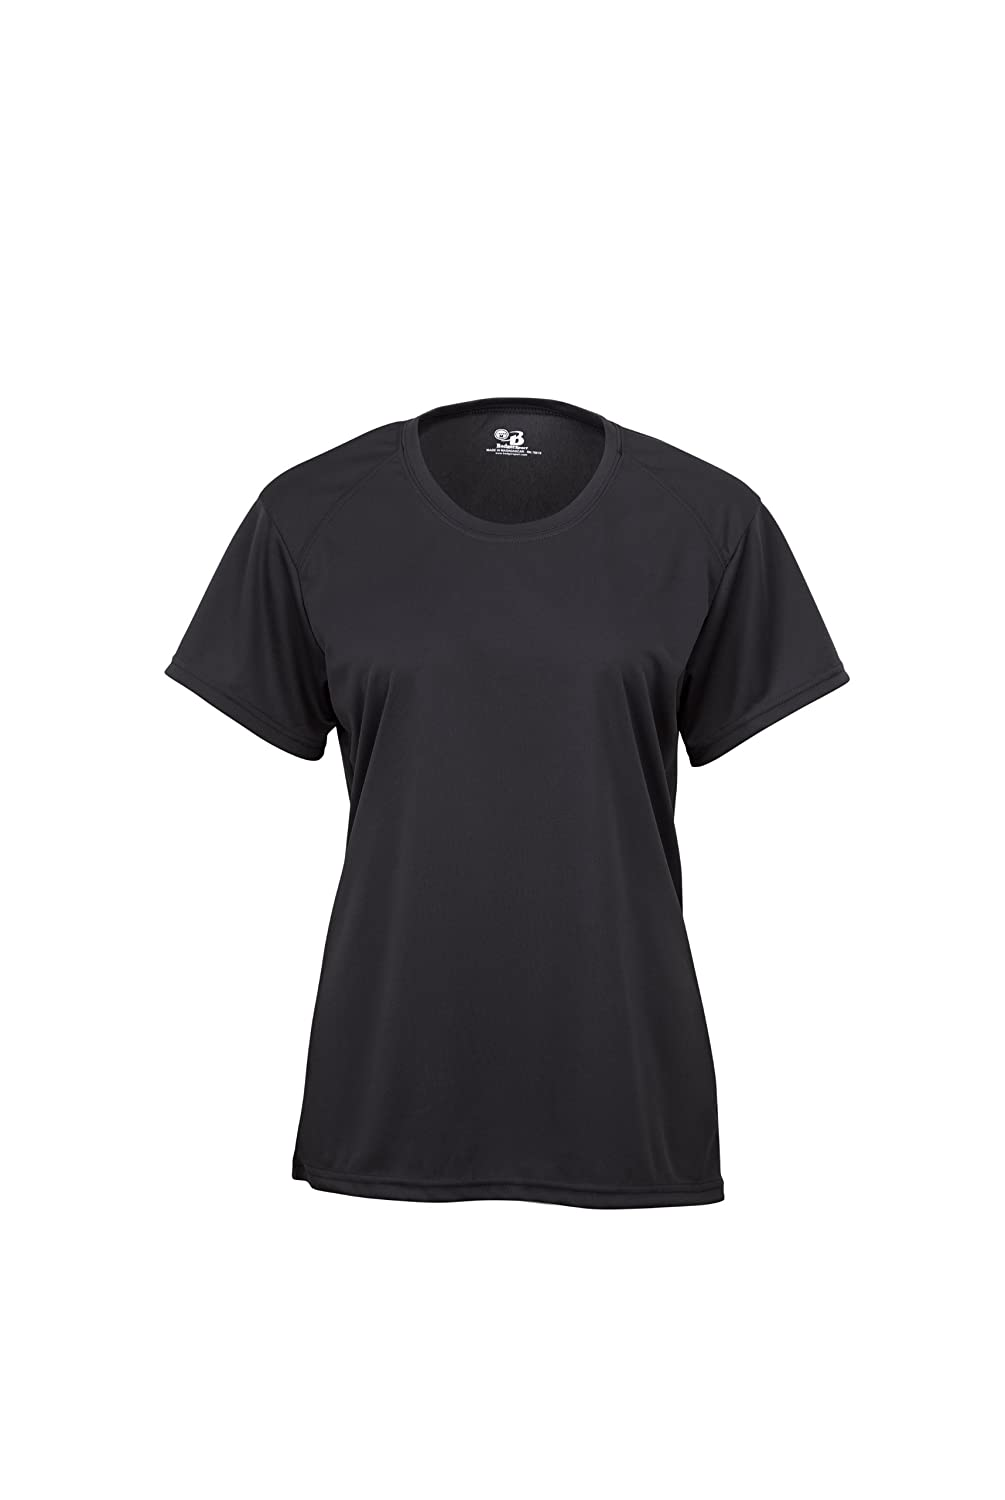 c9f21f23 Amazon.com: Badger Sportswear Women's B-Dry Short Sleeve Performance Tee:  Clothing